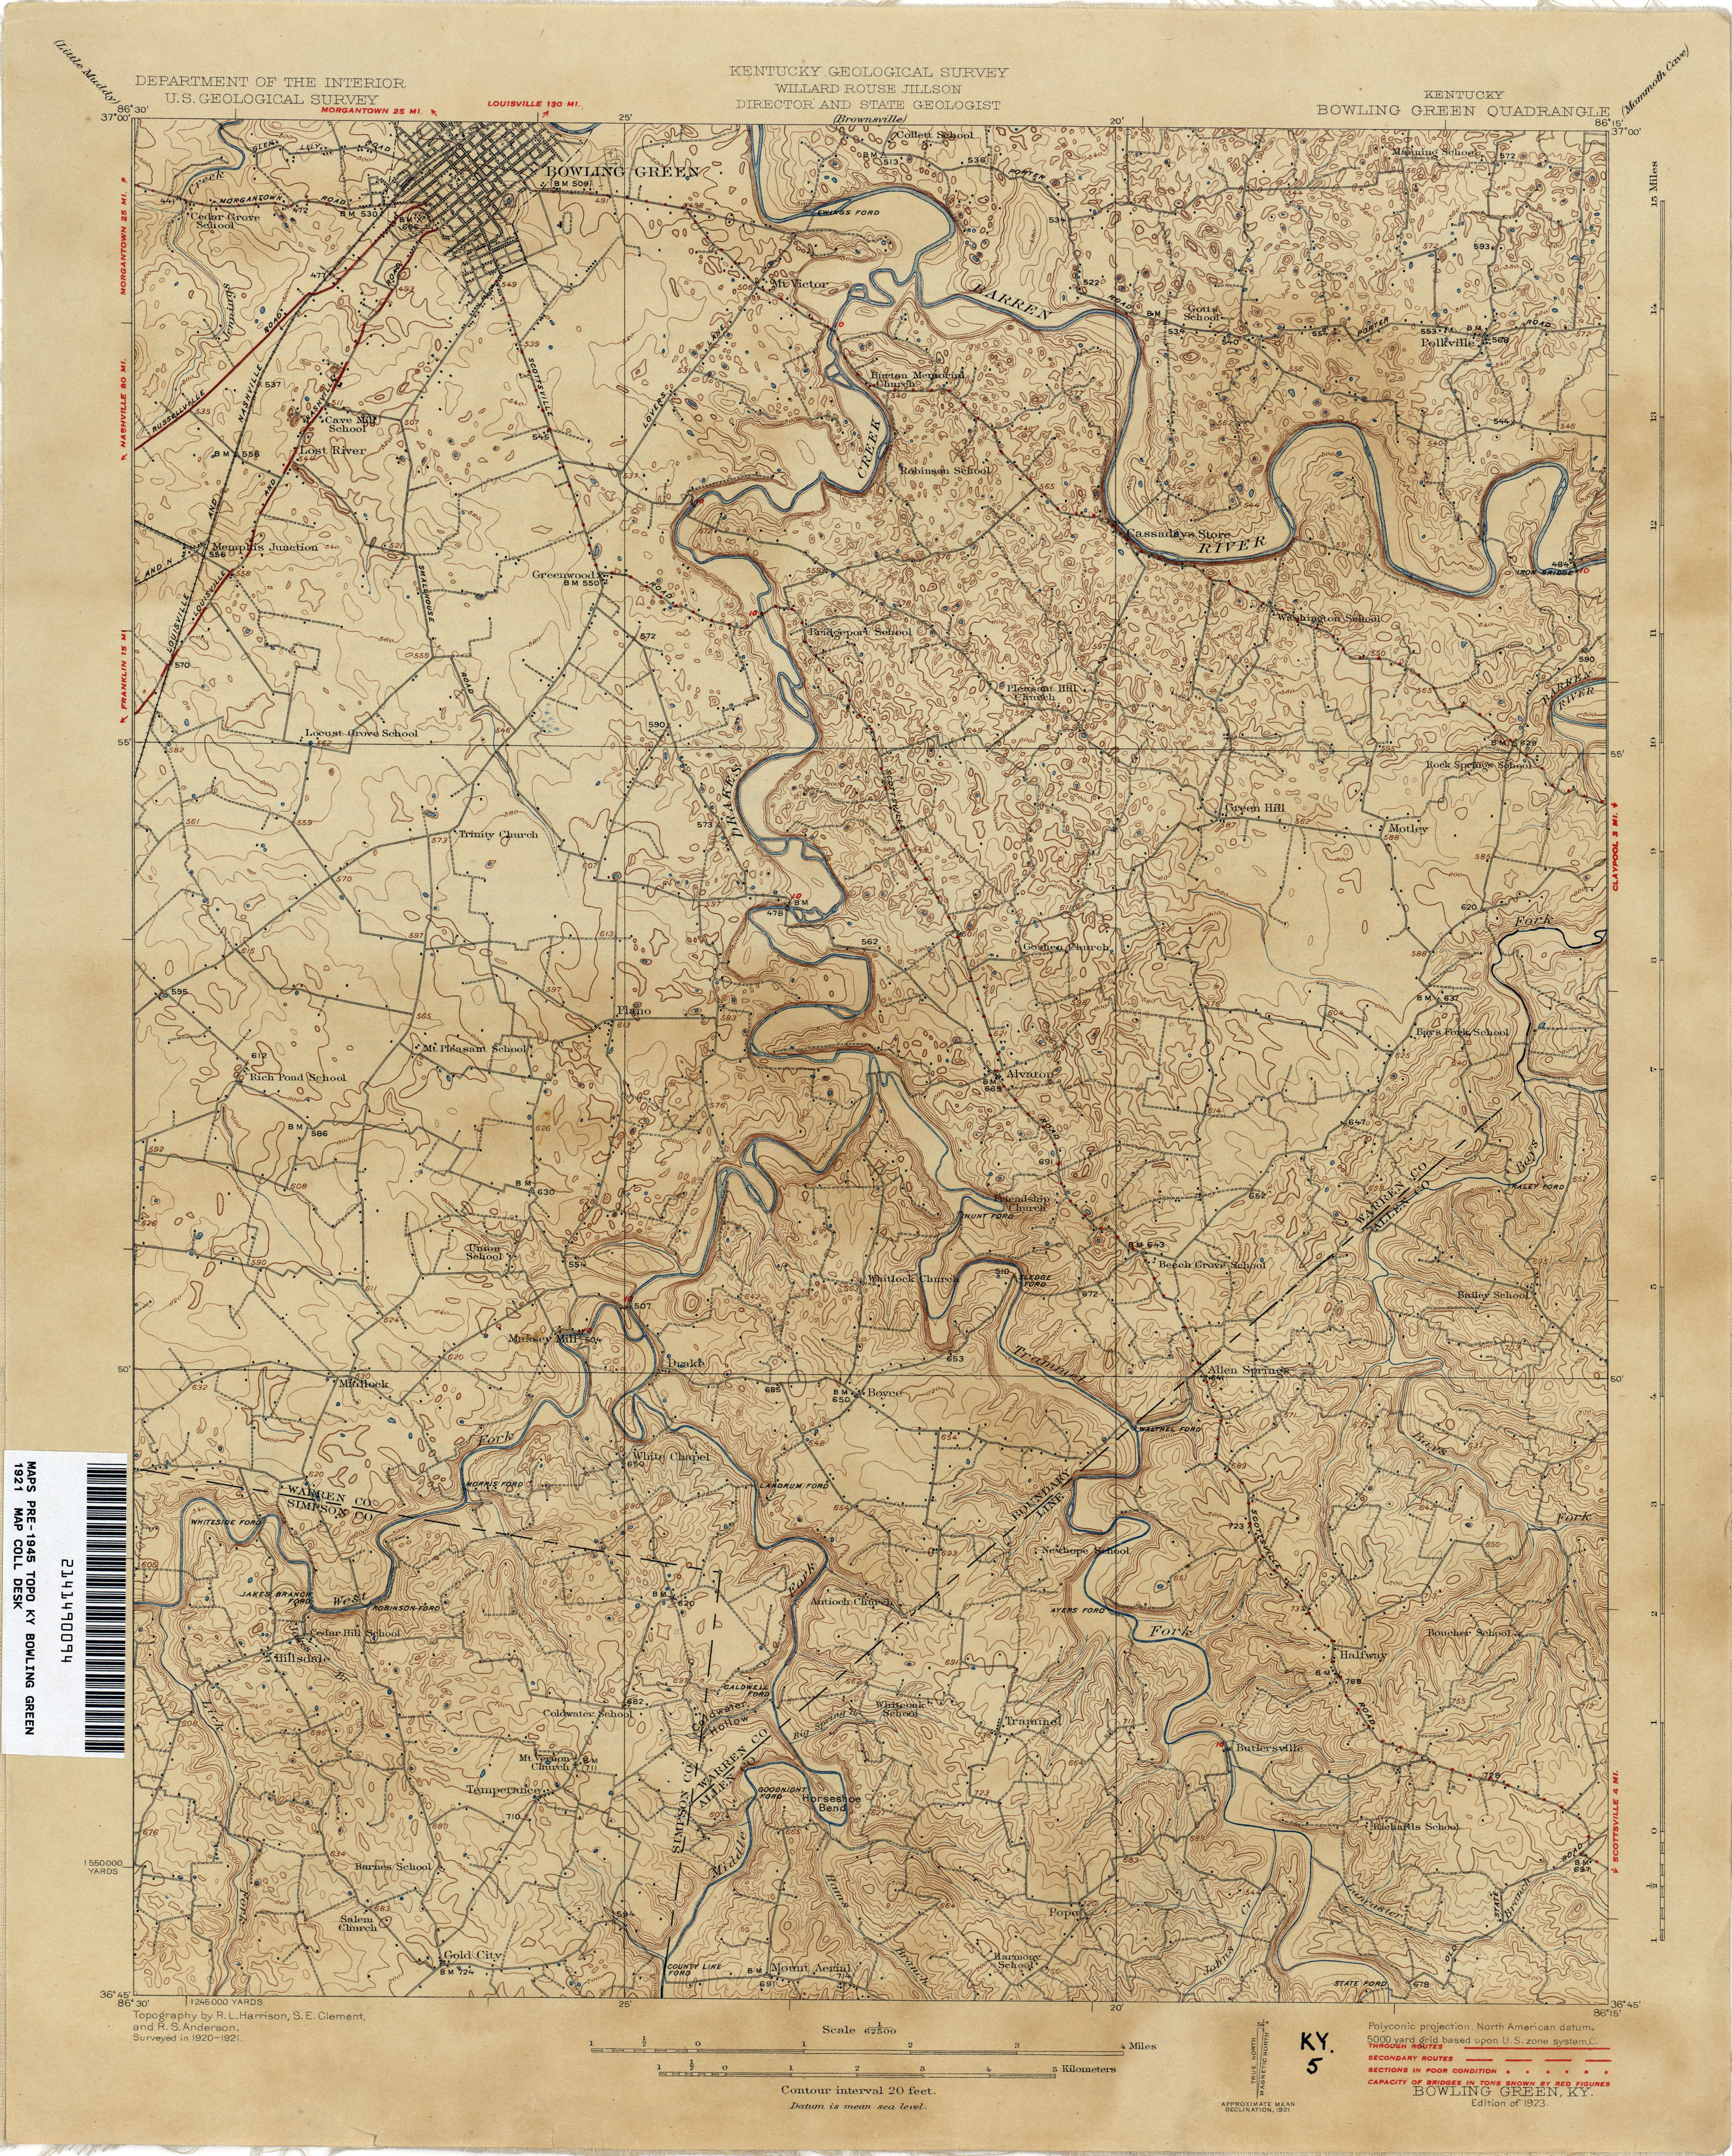 Kentucky Historical Topographic Maps - Perry-Castañeda Map ... on owenton ky city maps, kentucky state maps, housing in henderson ky maps, gamaliel ky crab orchard maps, old ohio county ky maps, kentucky satellite maps, kentucky floodplain maps, kentucky street maps, ohio farm maps, kentucky geological maps, ifor morganfield ky mine maps, tennessee geologic quadrangle maps, red bird ky trail maps, detailed kentucky road maps, civil war railroad maps, larue county kentucky old maps, indiana topographic maps, landforms topographic maps, kentucky quadrangle maps,